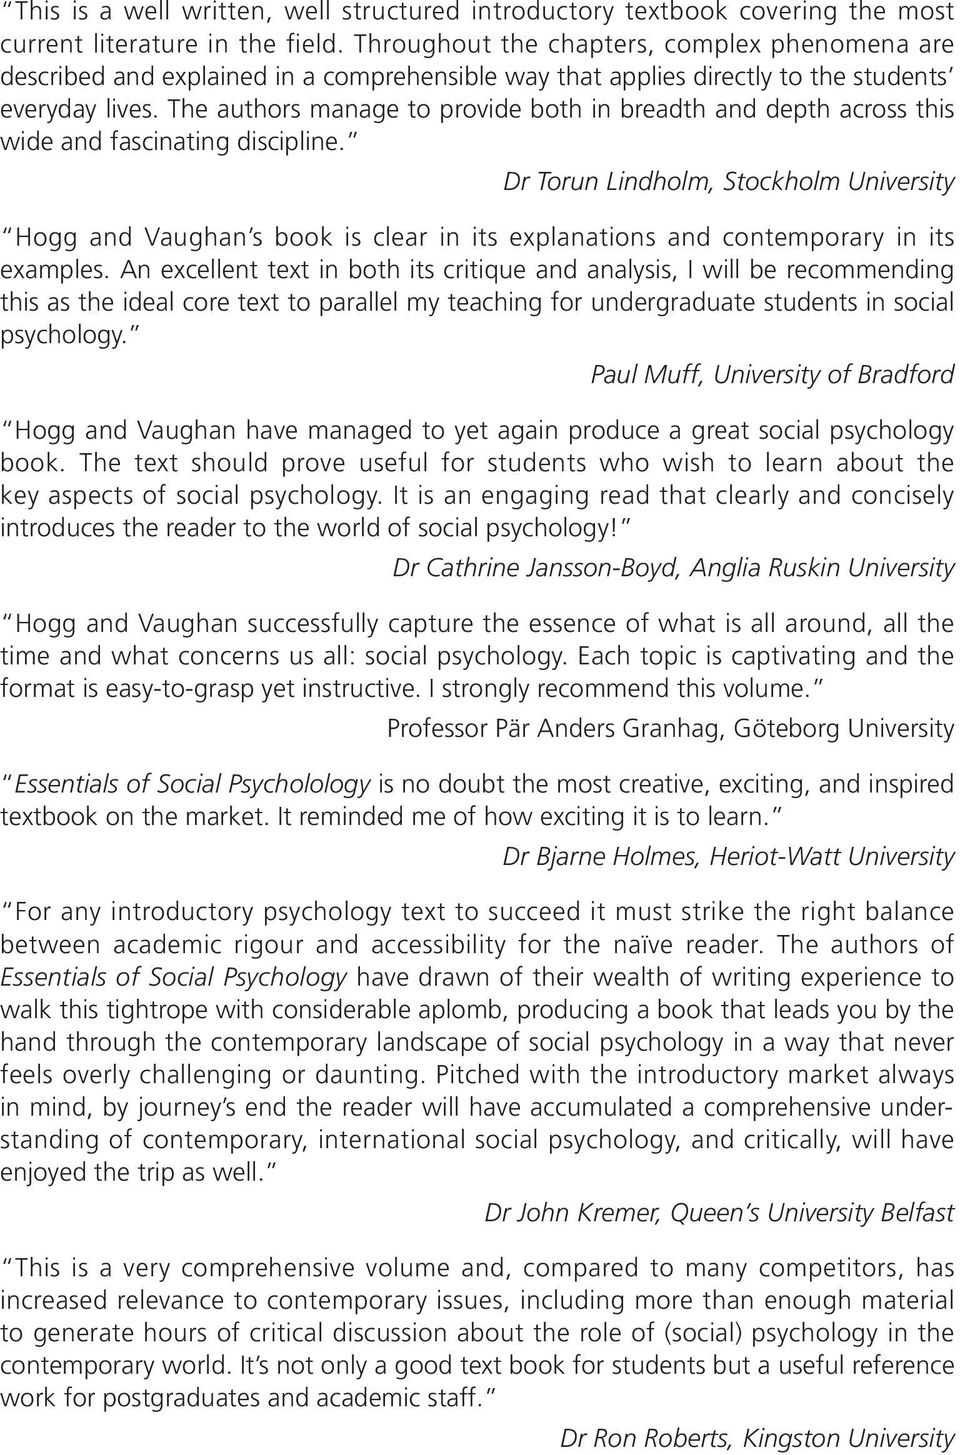 Essentials of social psychology michael a hogg graham m vaughan the authors manage to provide both in breadth and depth across this wide and fascinating discipline fandeluxe Image collections